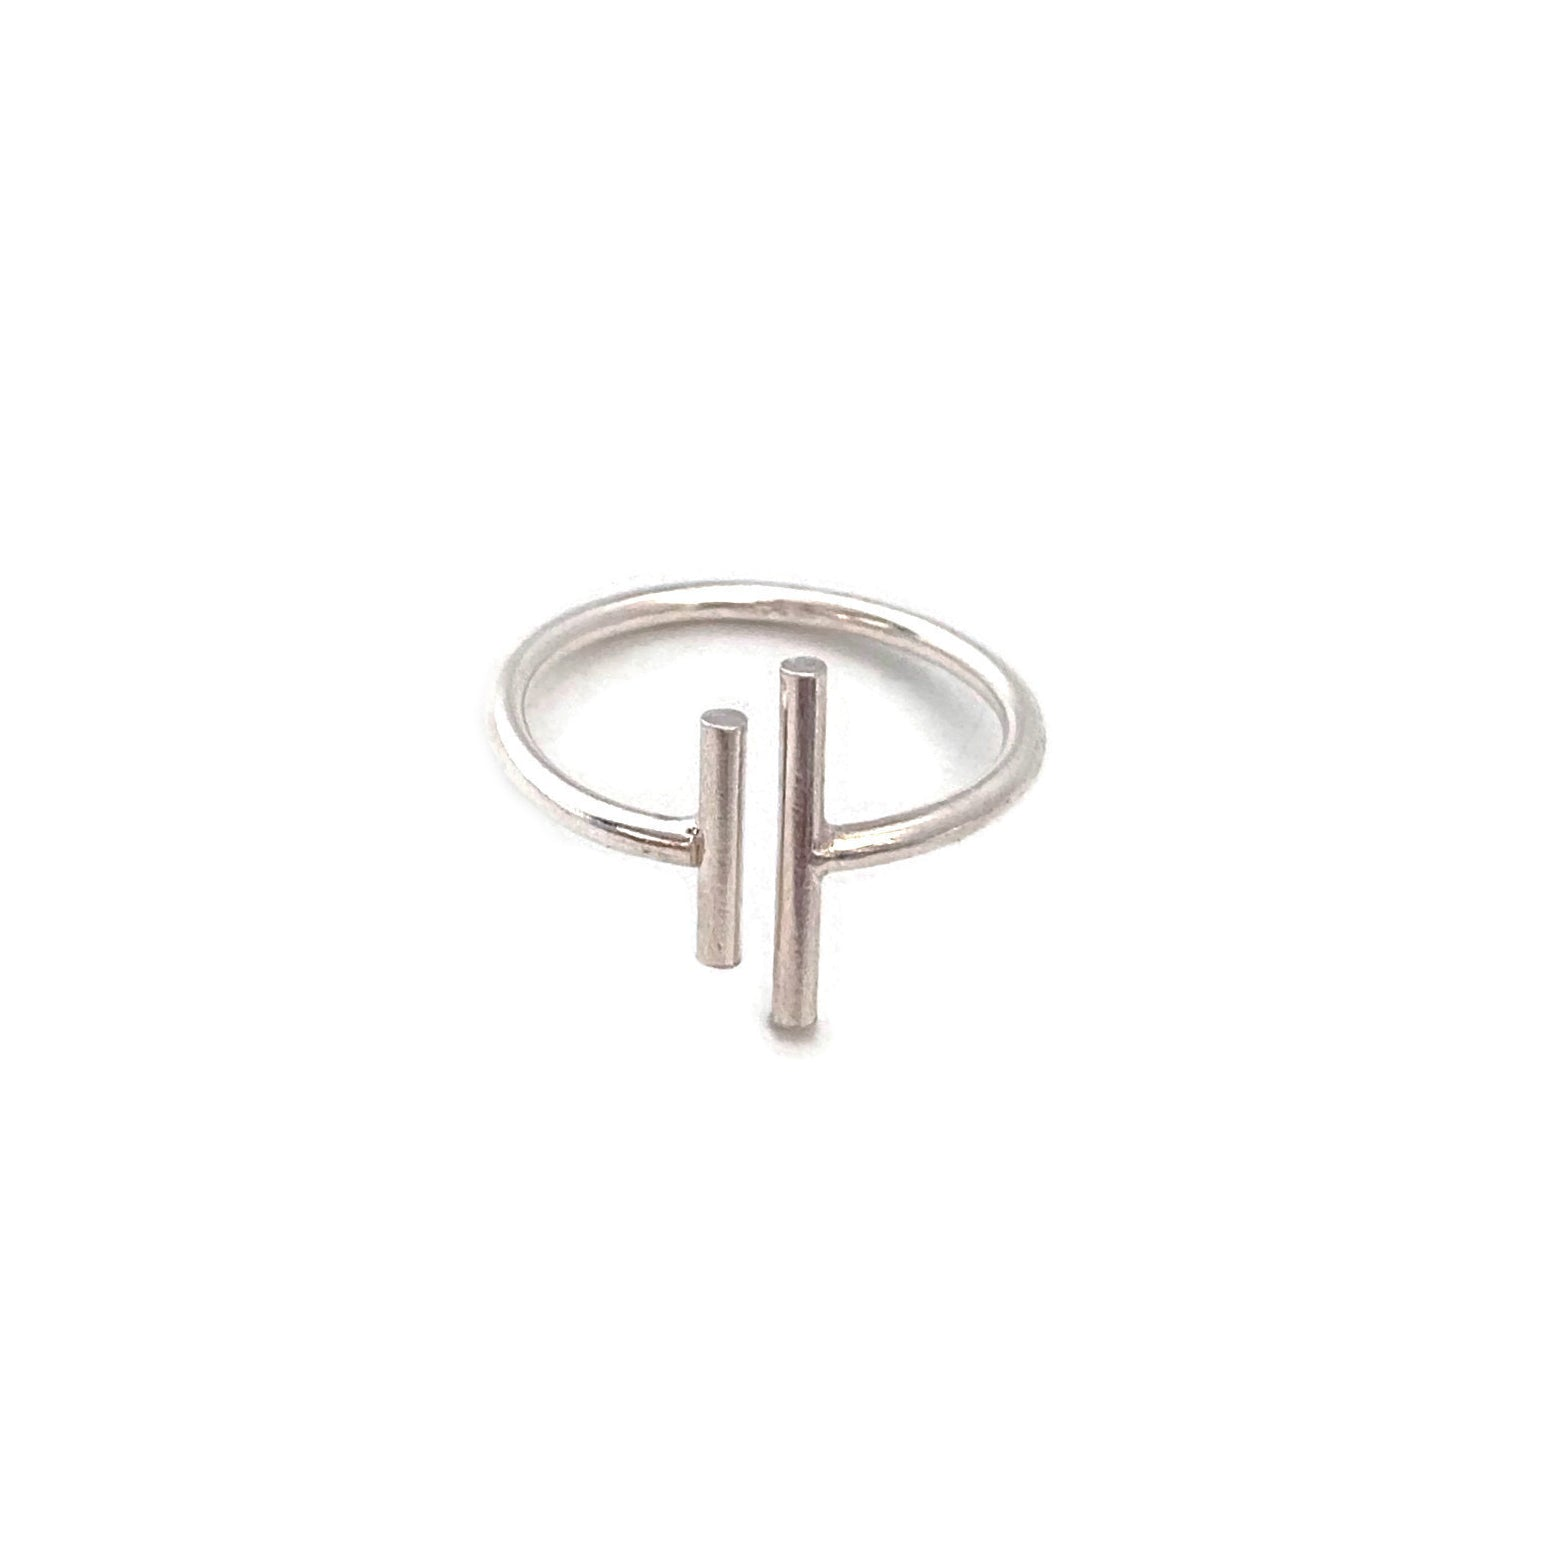 Sterling silver bar ring is minimal and simple for your everyday outfit.